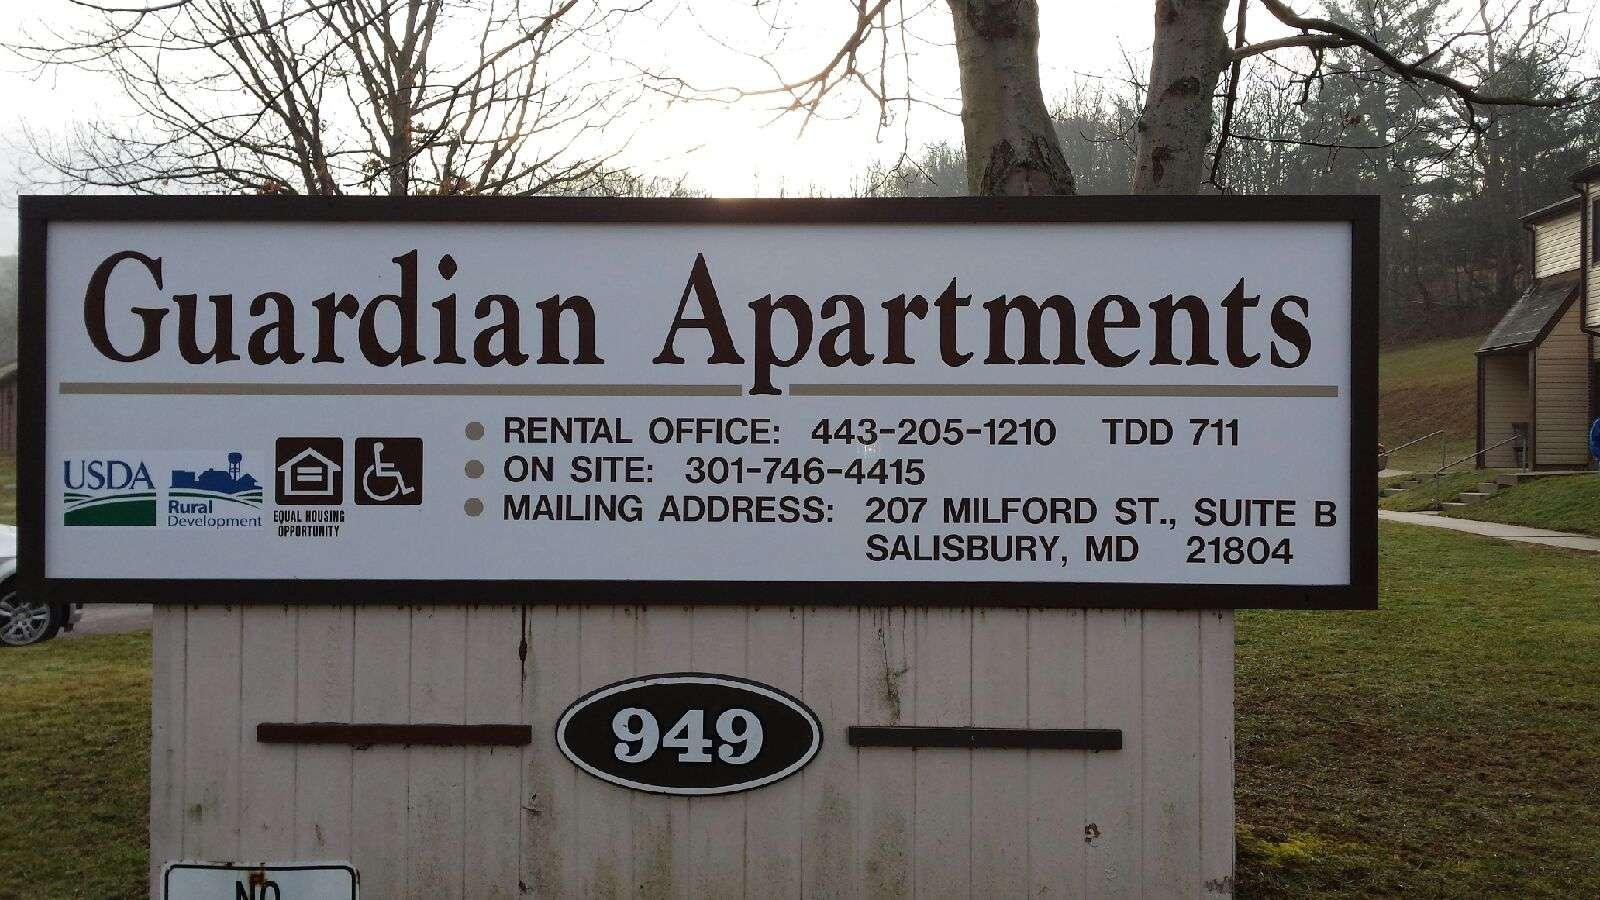 Image of Guardian Apartments